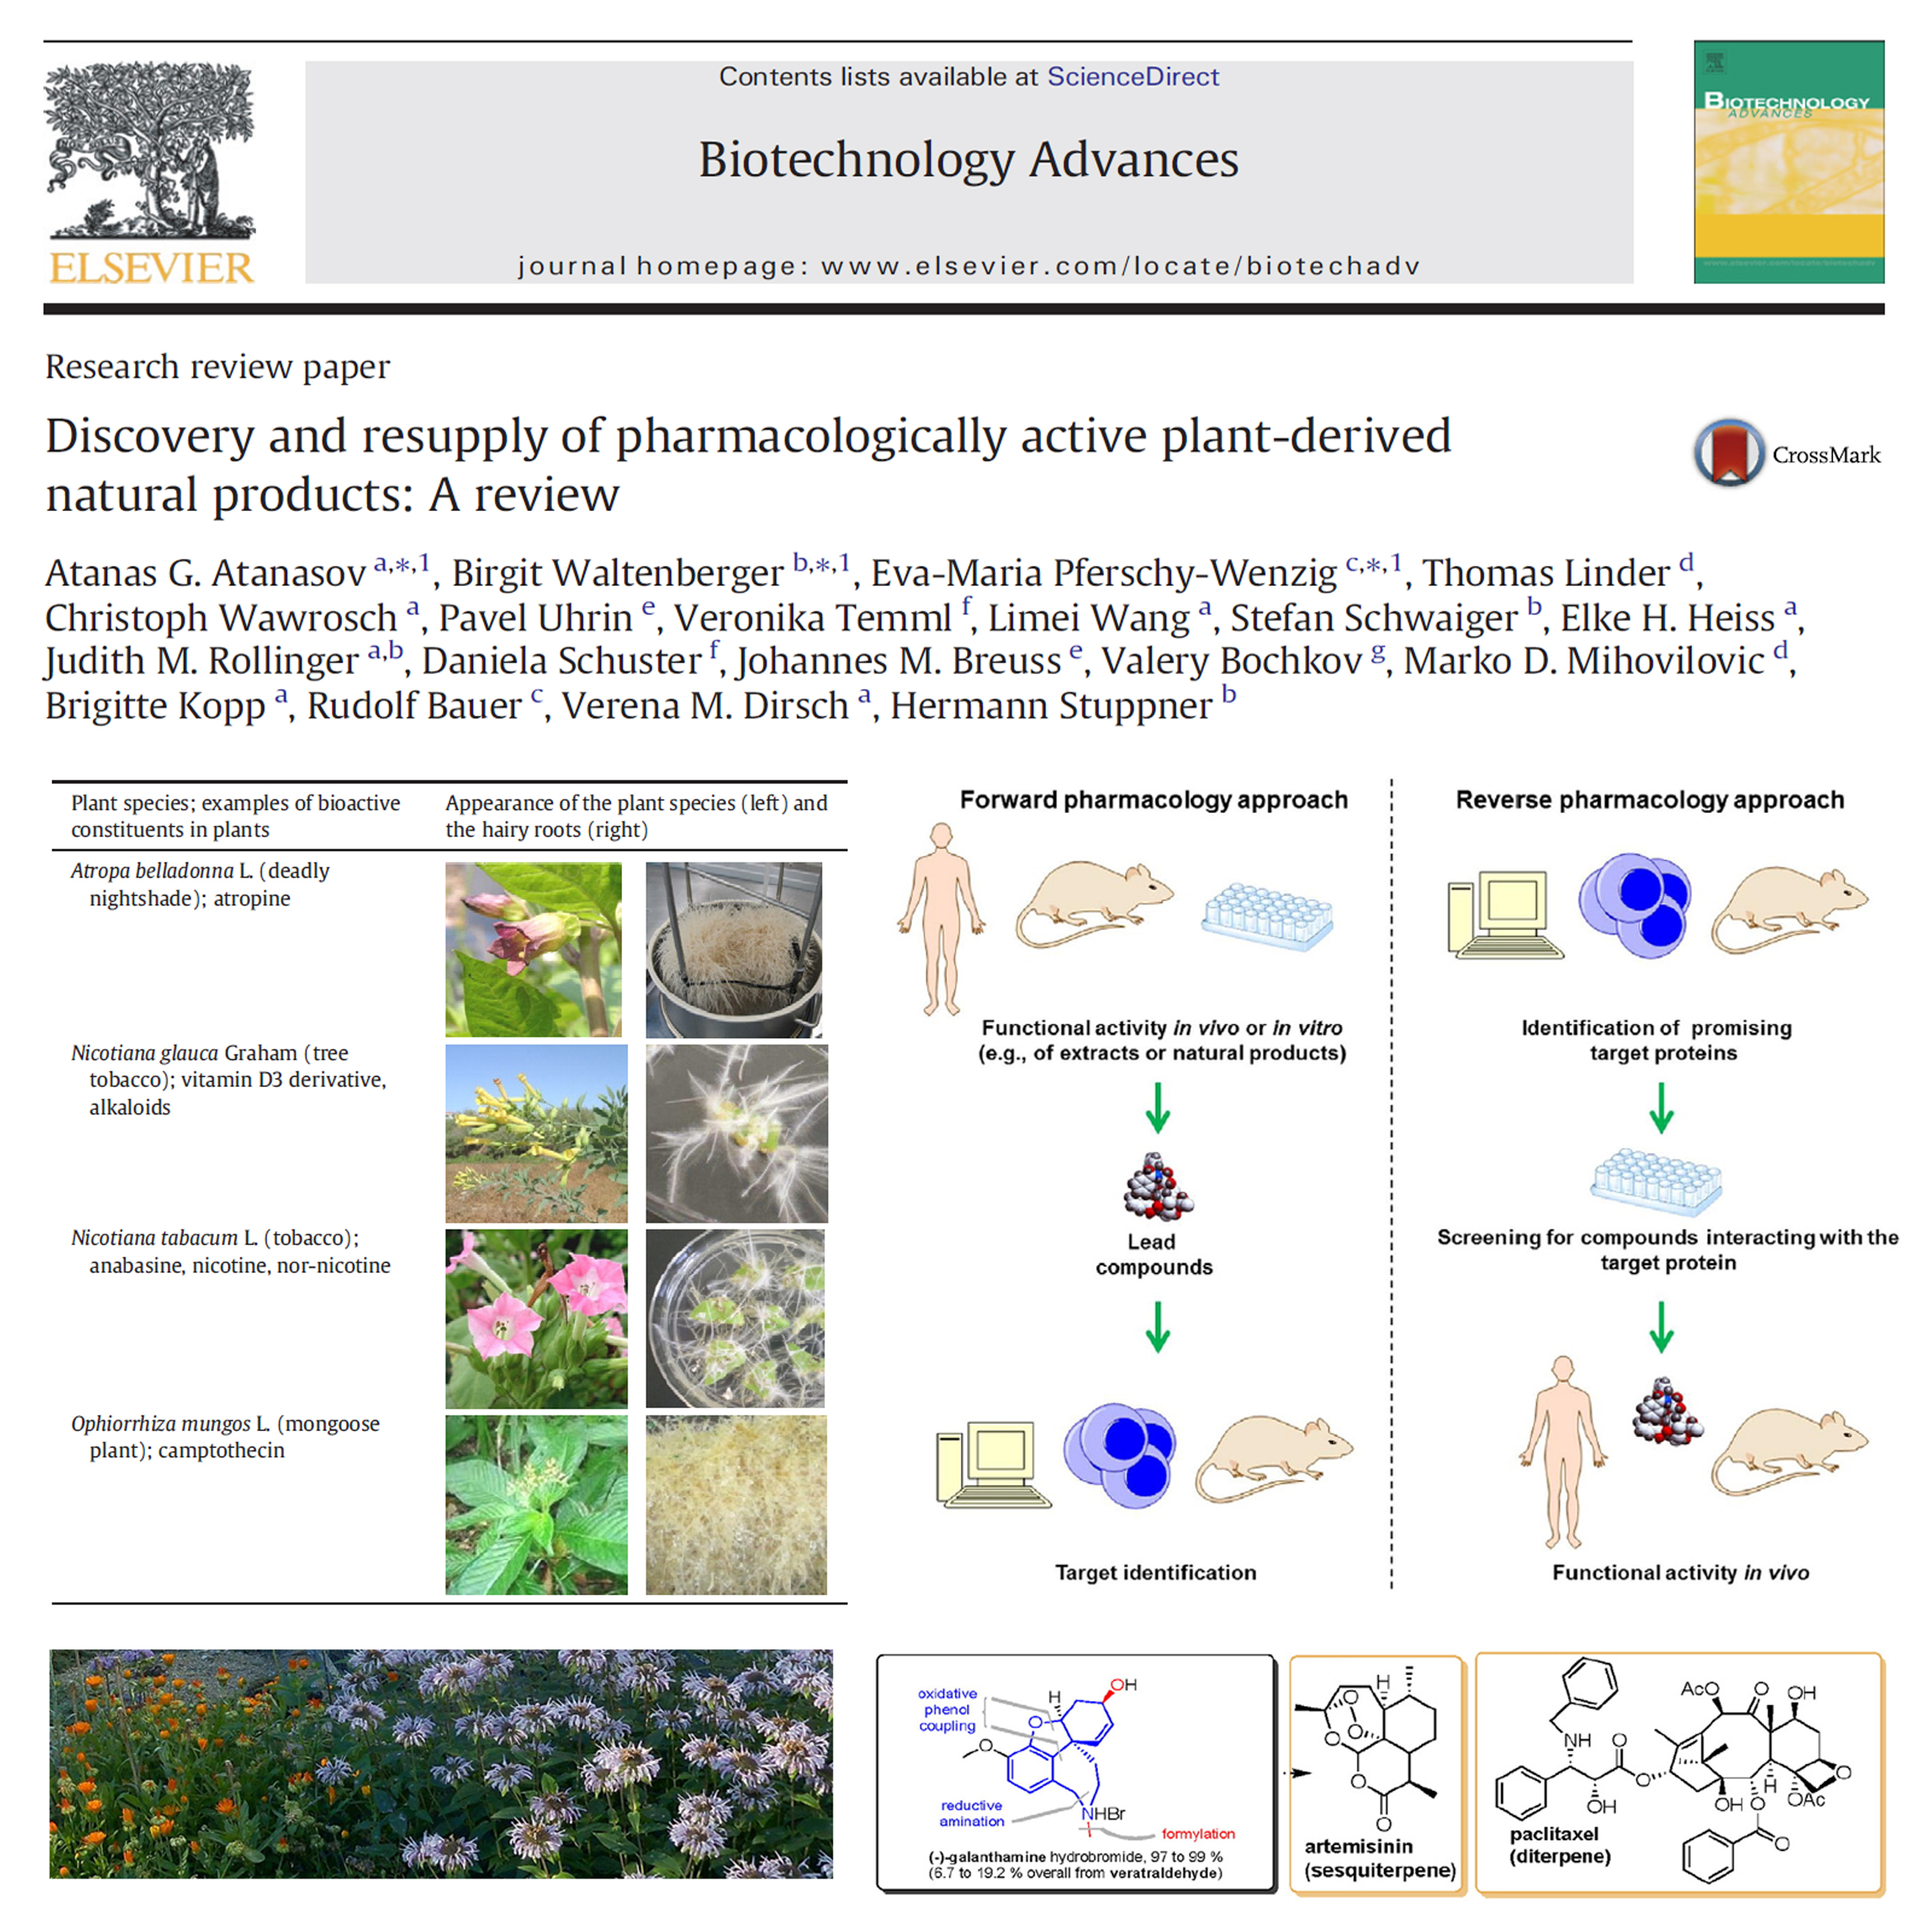 Discovery and resupply of pharmacologically active plant-derived natural products: A review